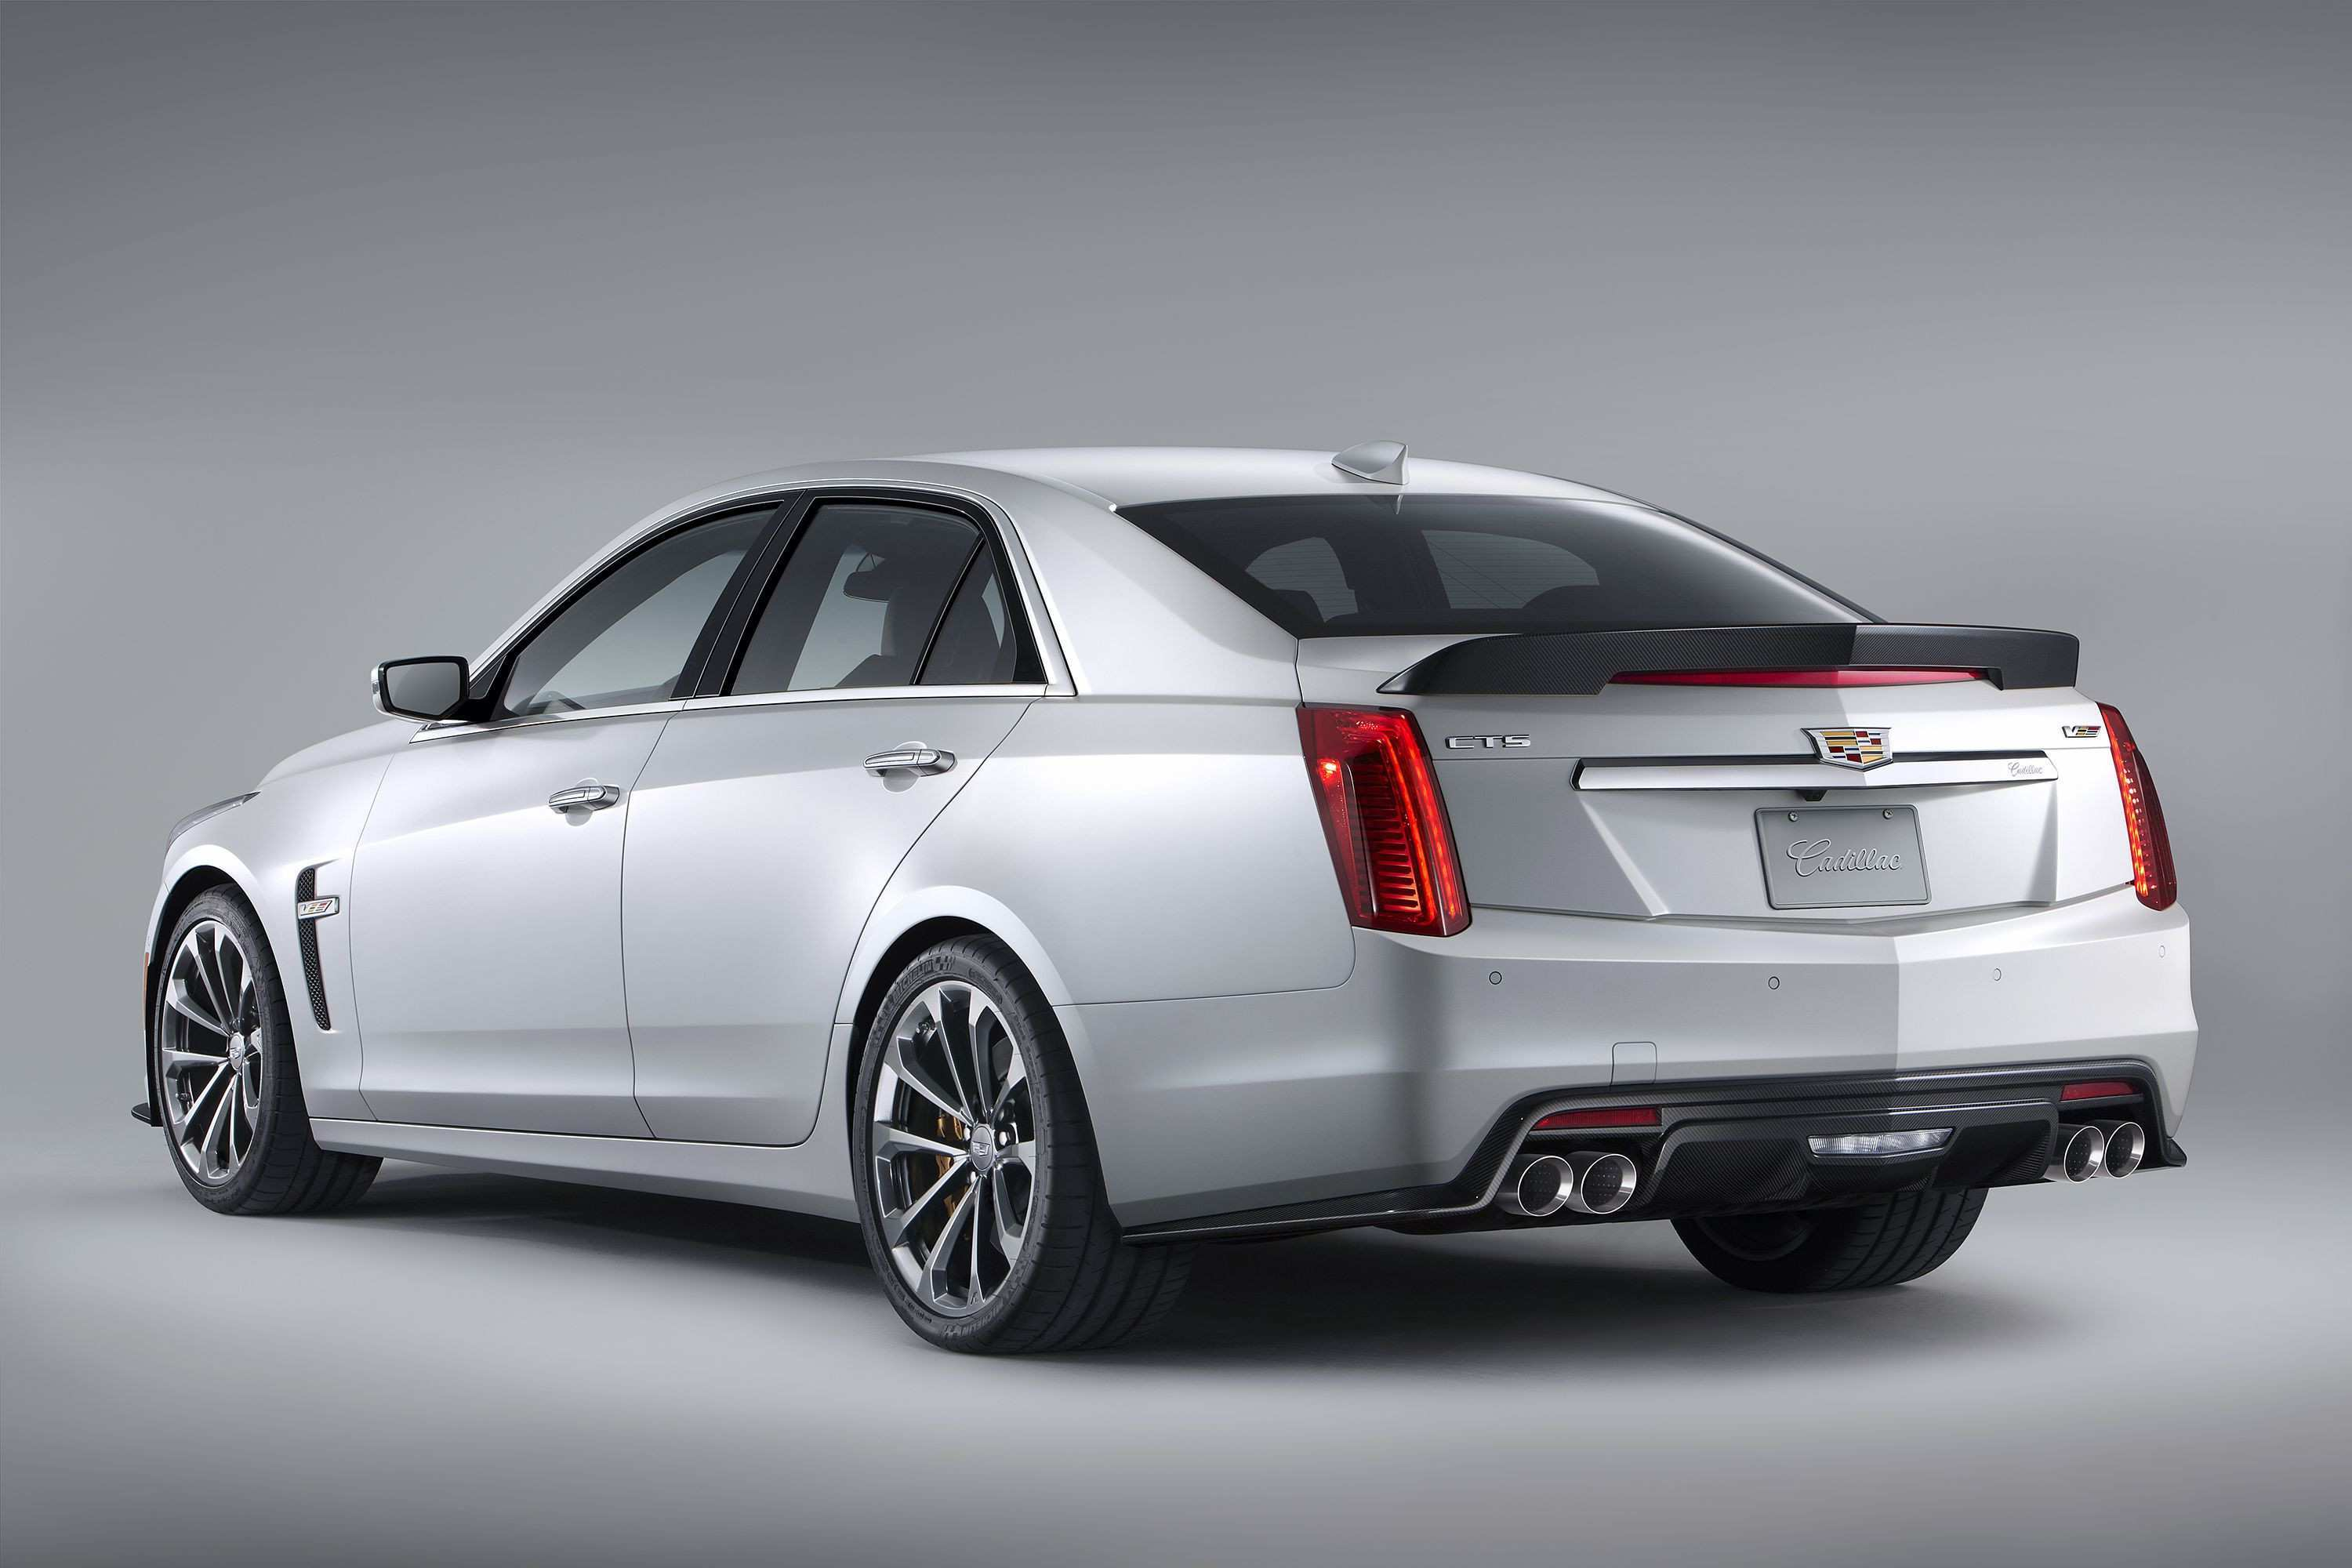 47 The Best 2020 Cadillac CTS V Picture